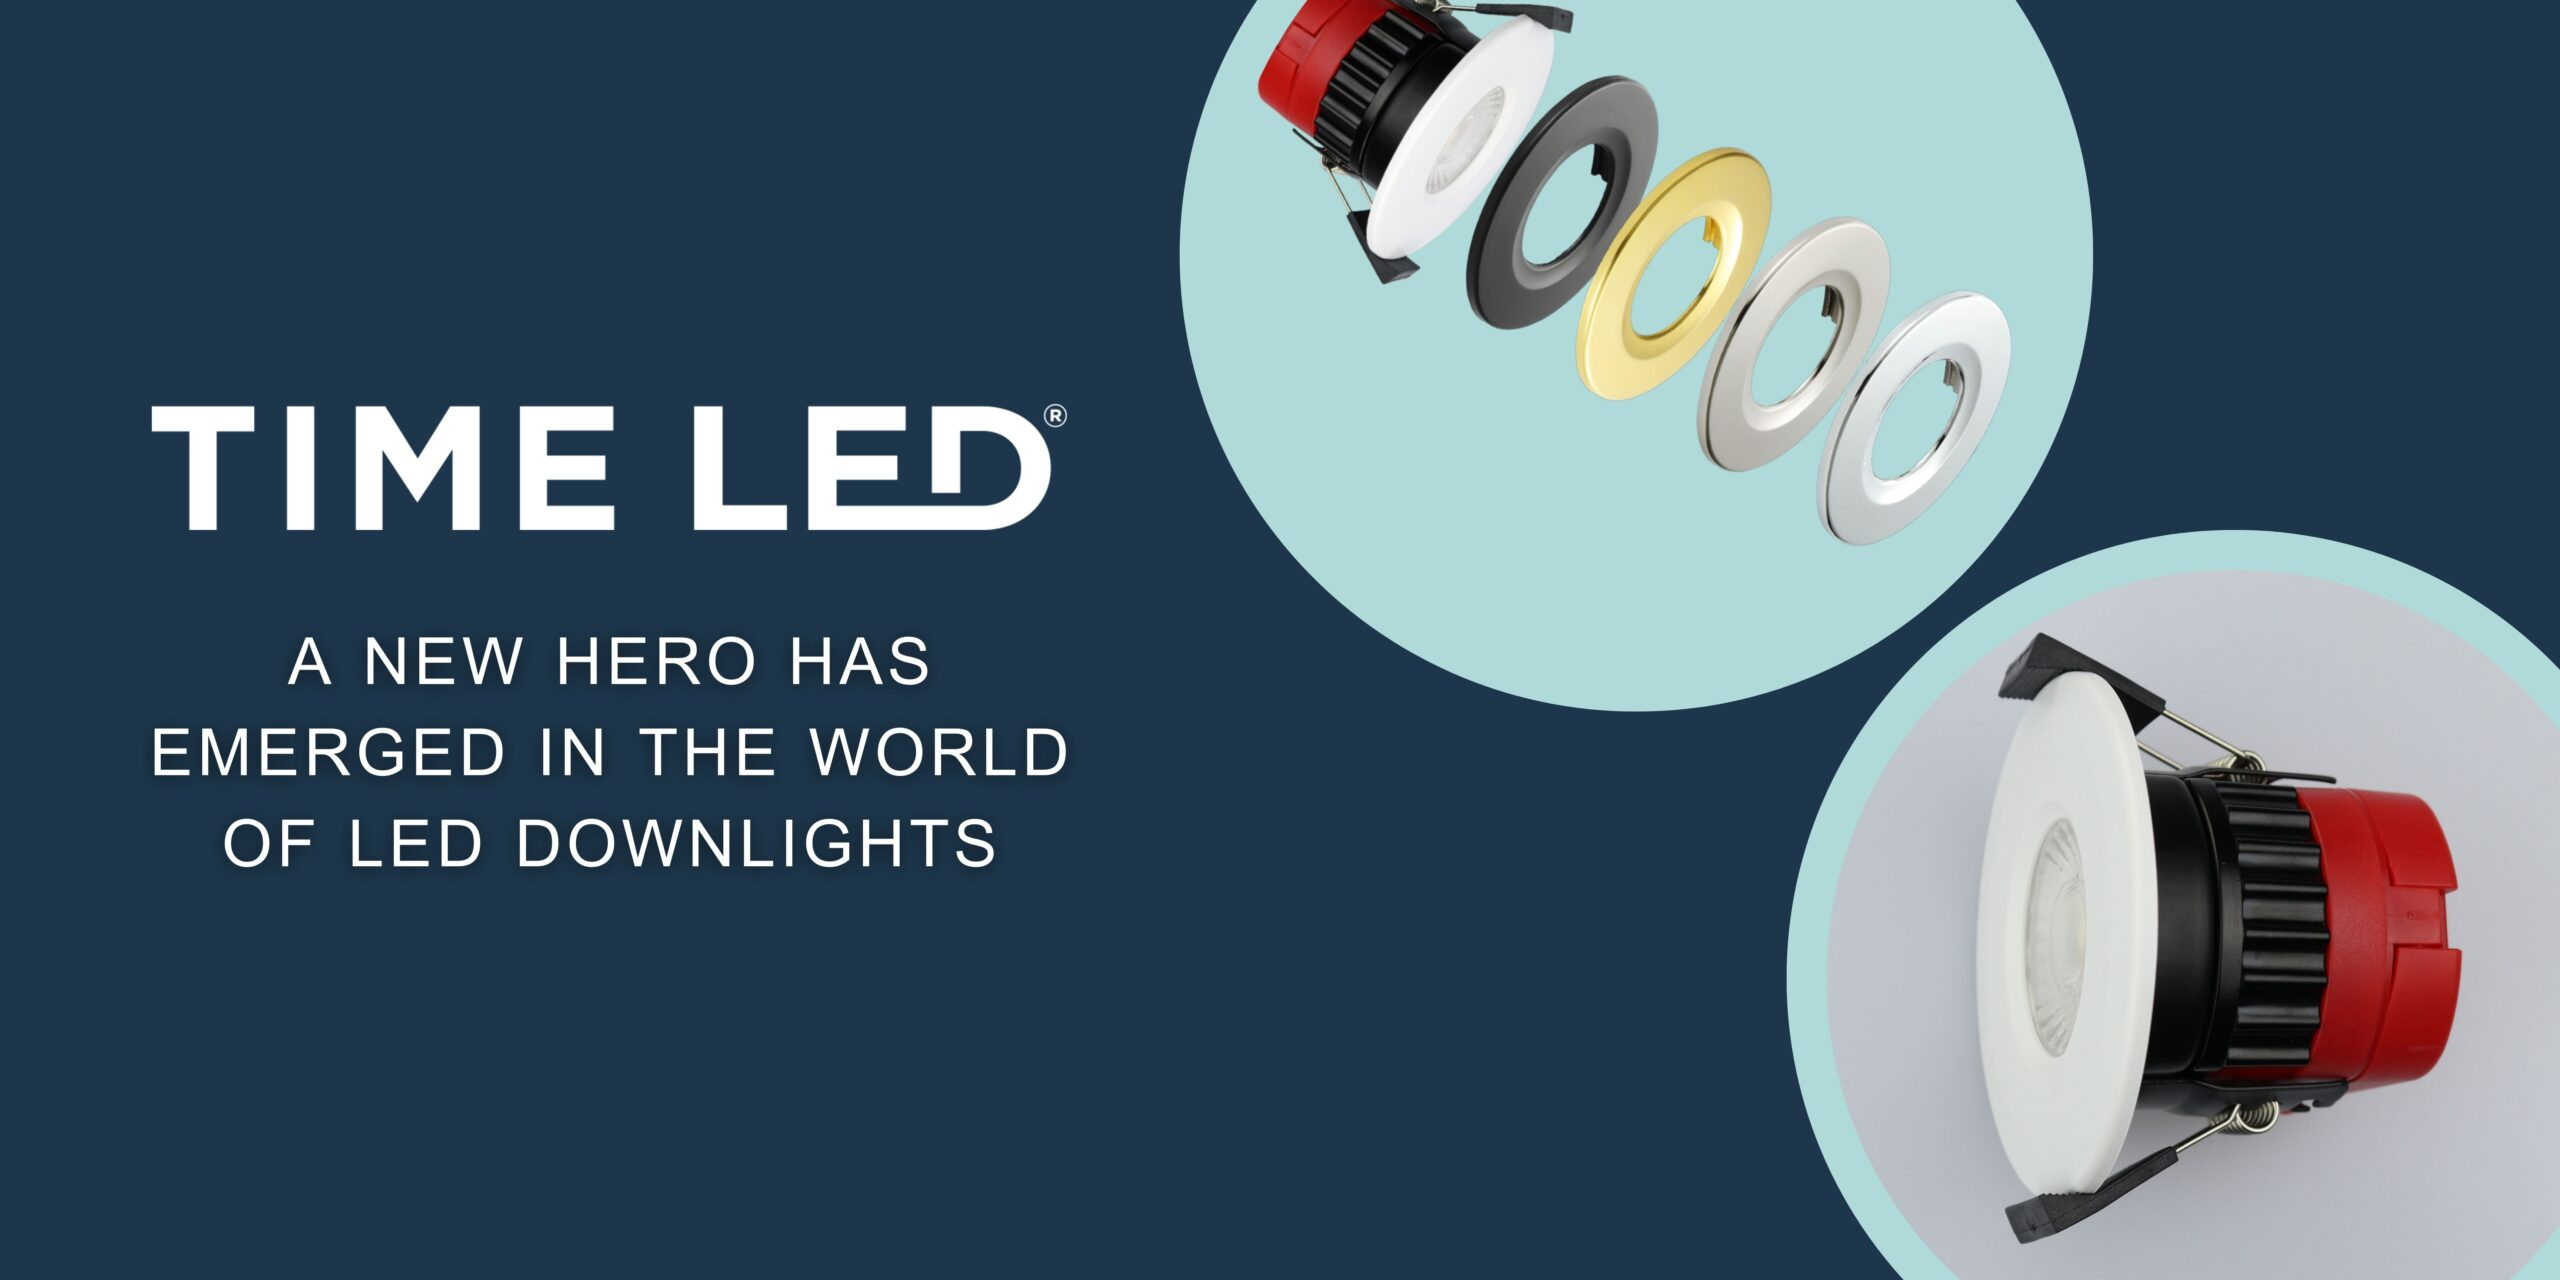 TIME LED New hero of a downlight